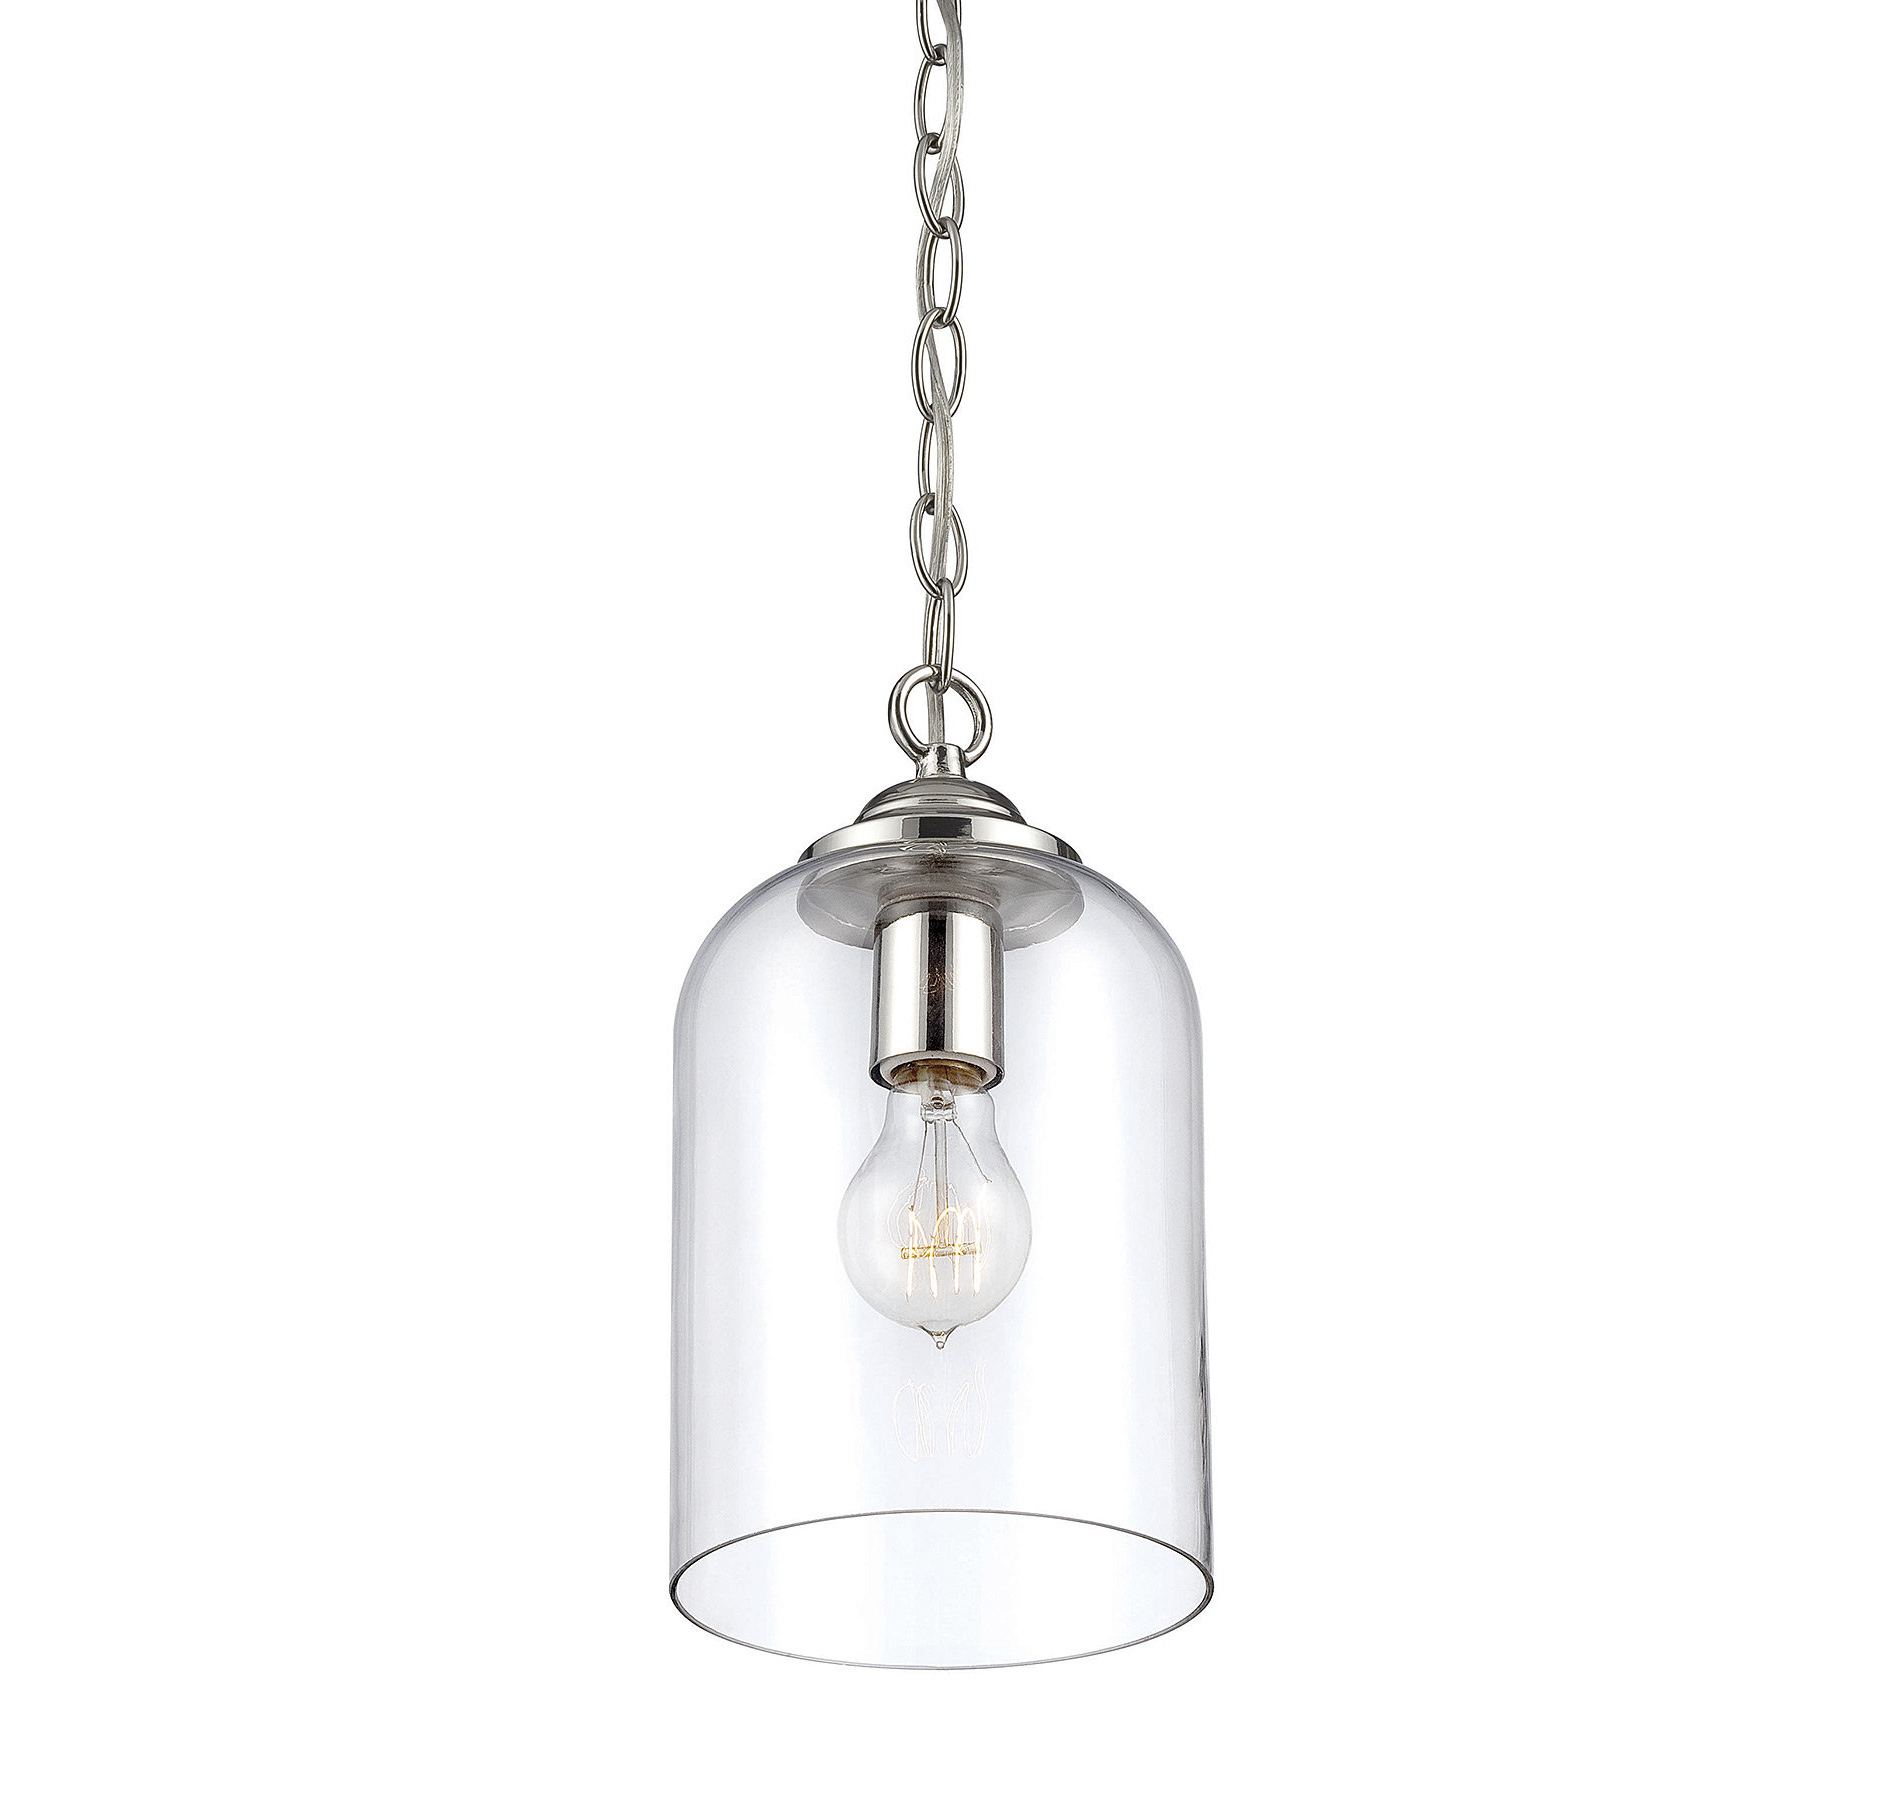 Silber 1 Light Single Bell Pendant Intended For Most Up To Date Goldie 1 Light Single Bell Pendants (View 19 of 20)